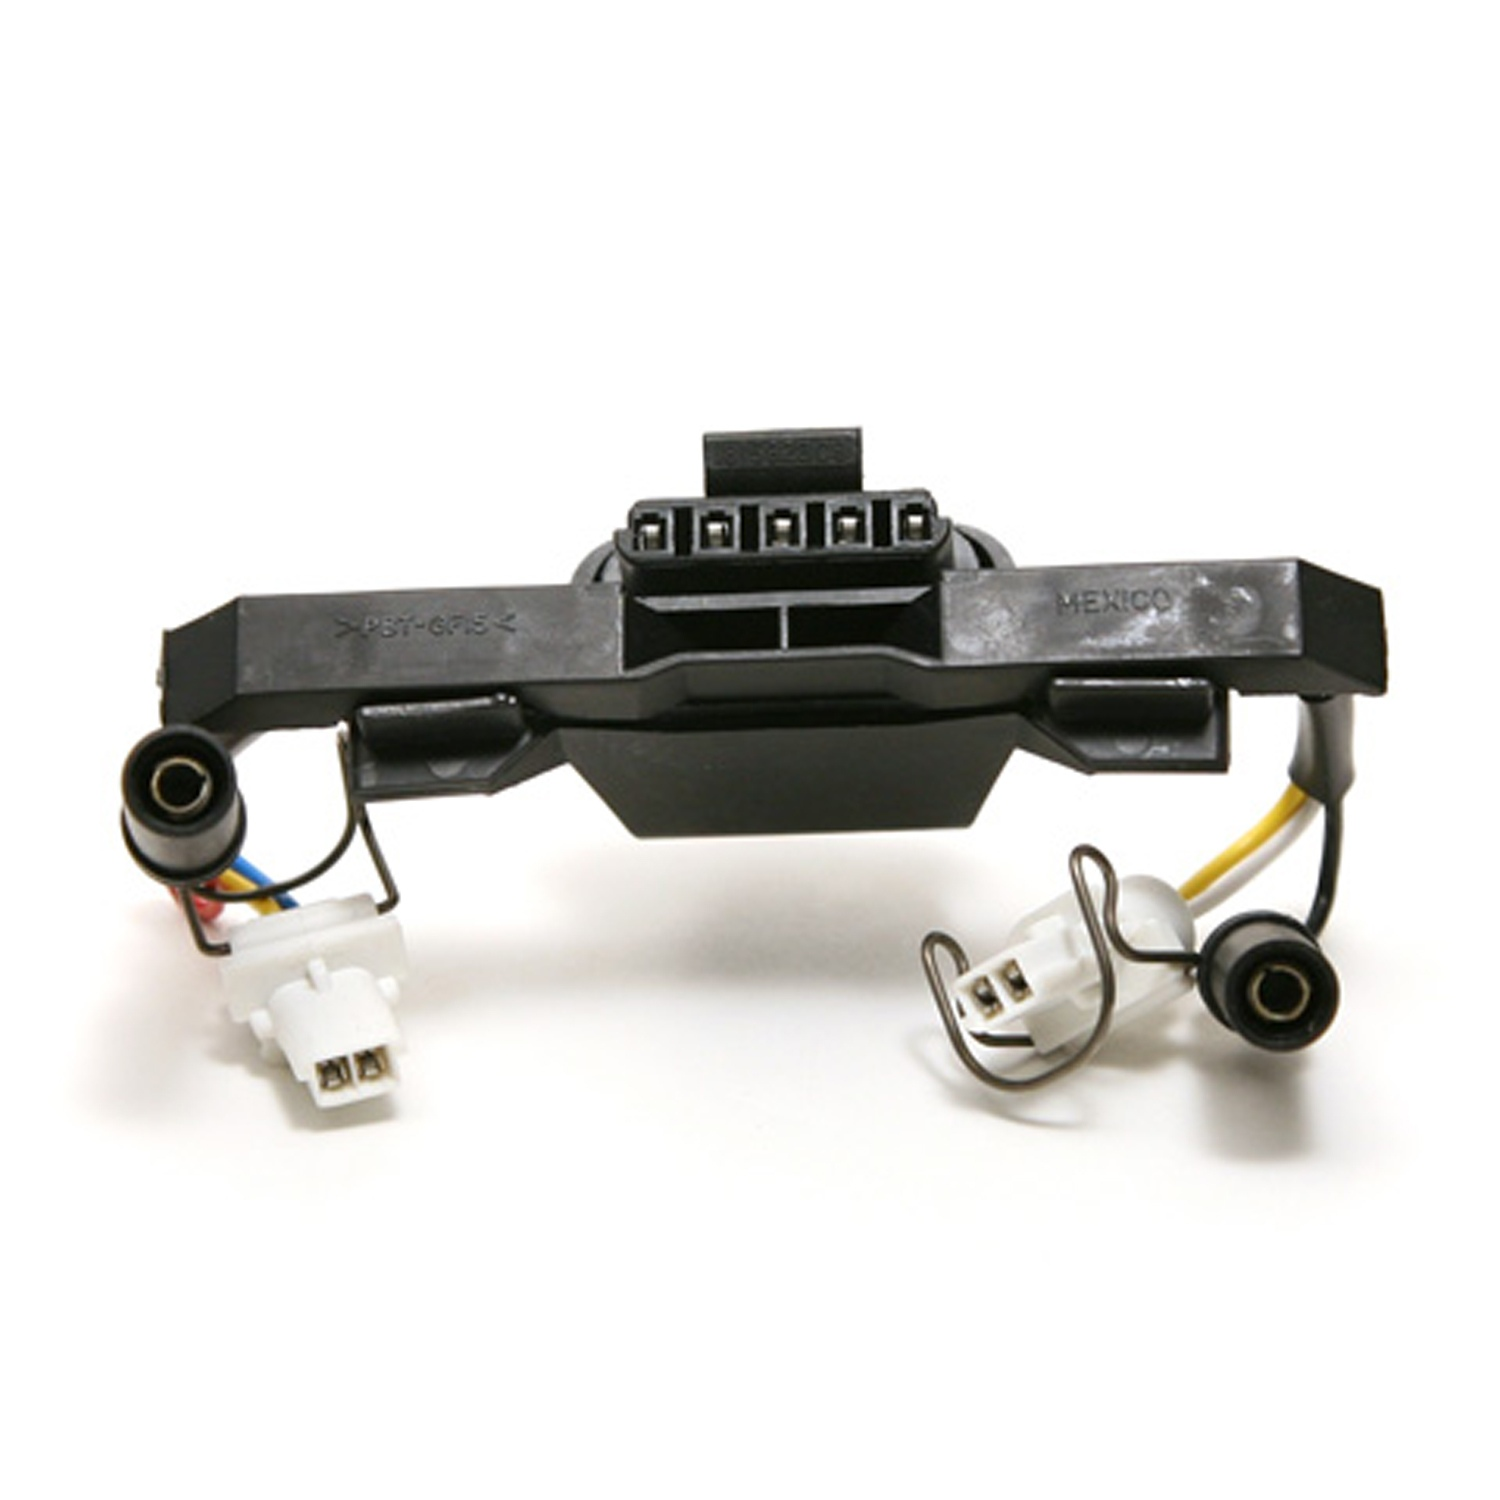 hight resolution of details about diesel glow plug wiring harness delphi htp110 fits 94 97 ford f 350 7 3l v8